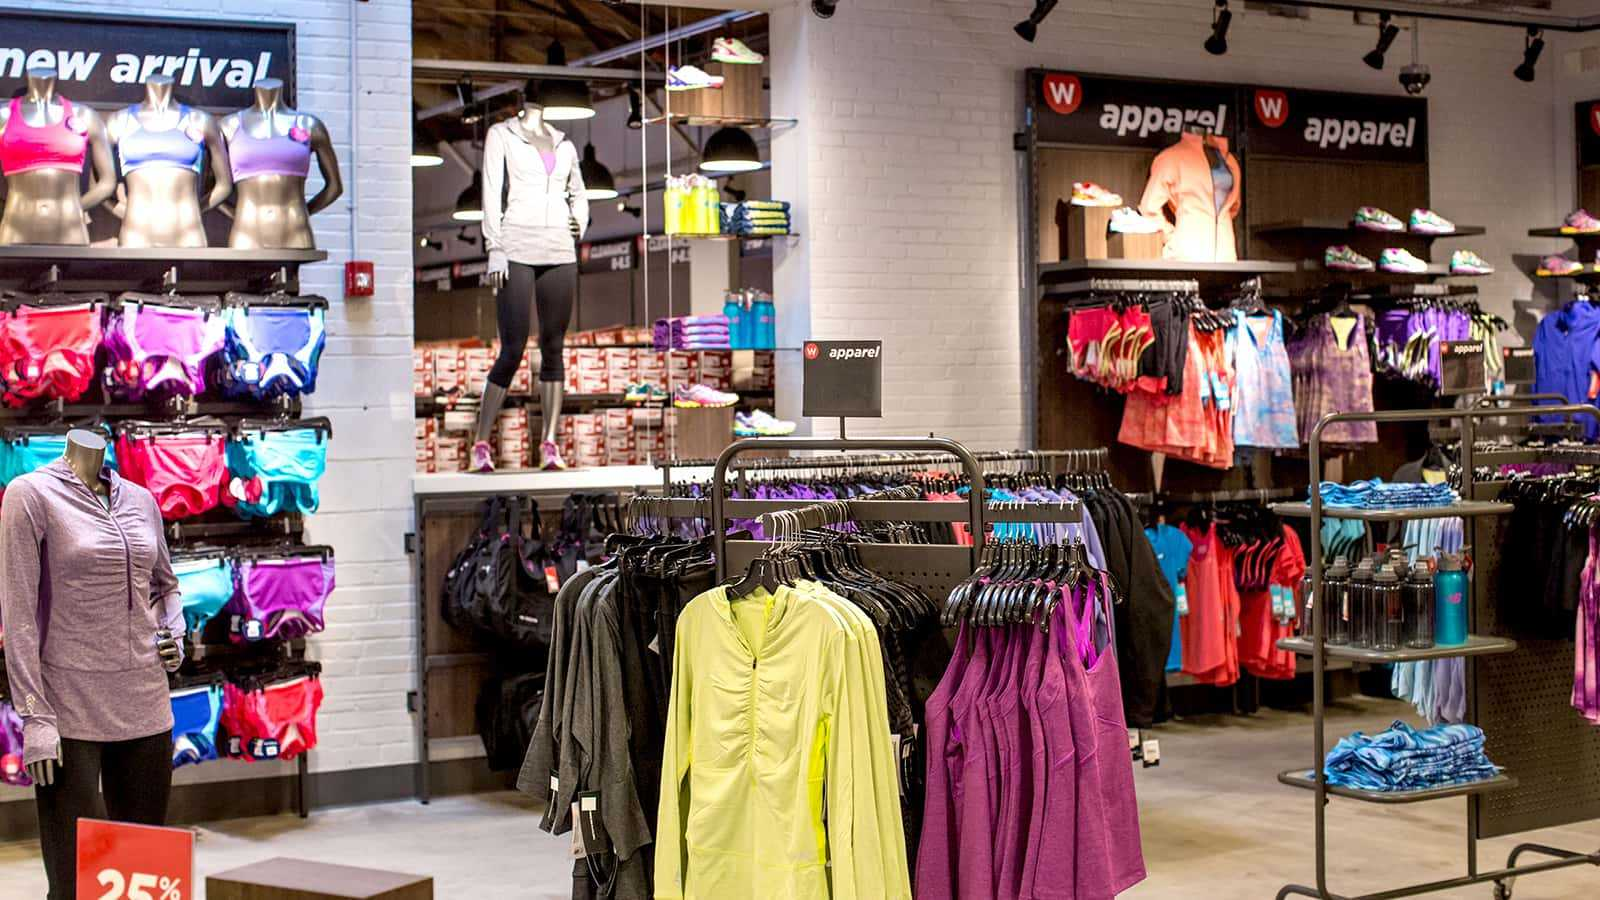 New Balance factory stores 2014 colorful apparel displays.